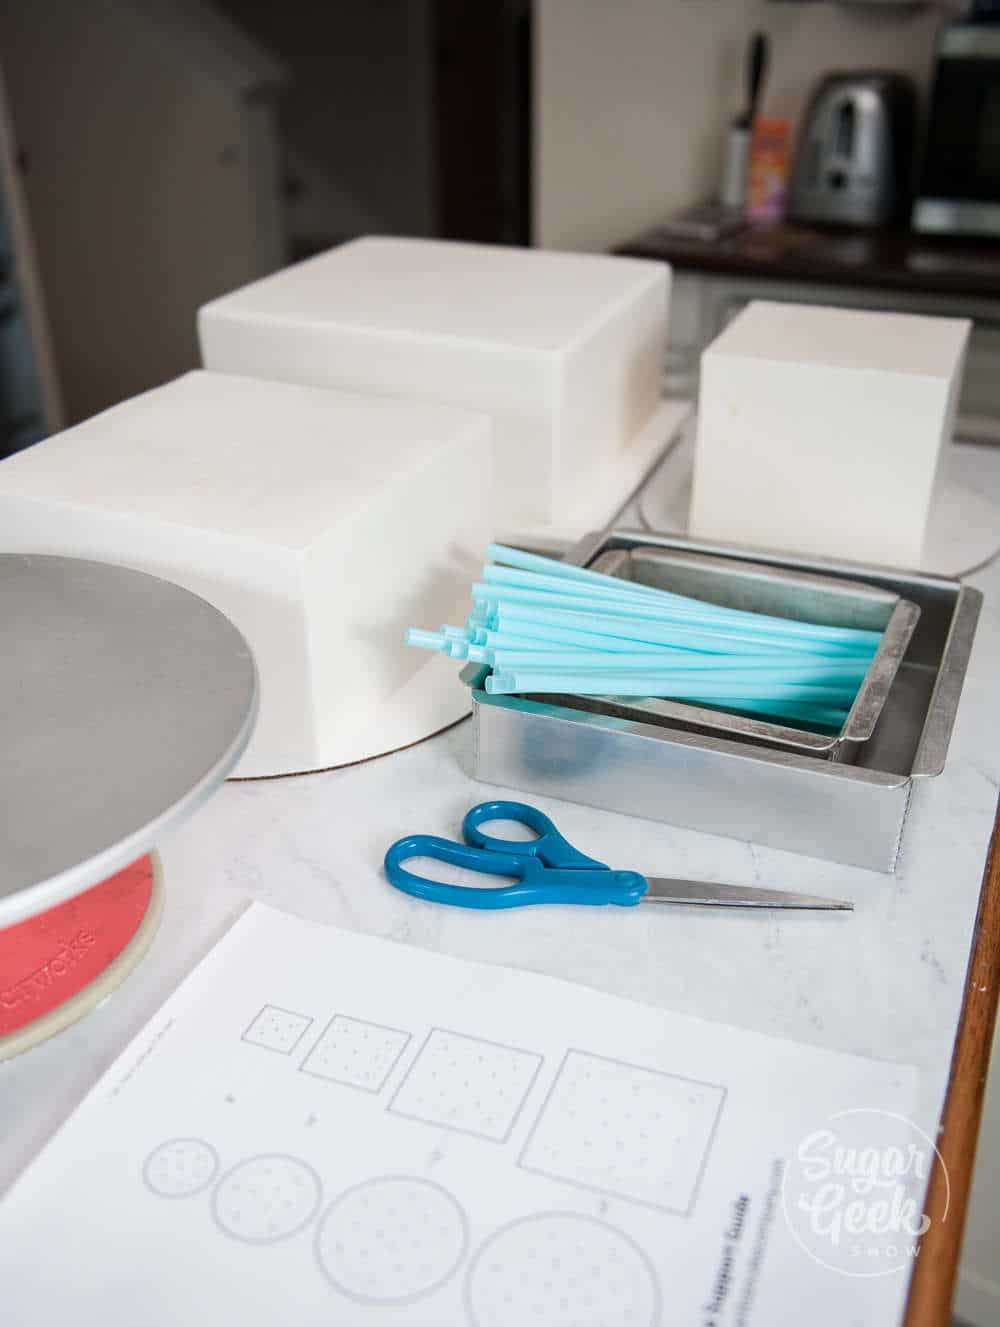 wedding cake supplies - turntable, thick milkshake straws, straw guide, scissors, square cake pans, three tiers of frosted and fondant covered cake